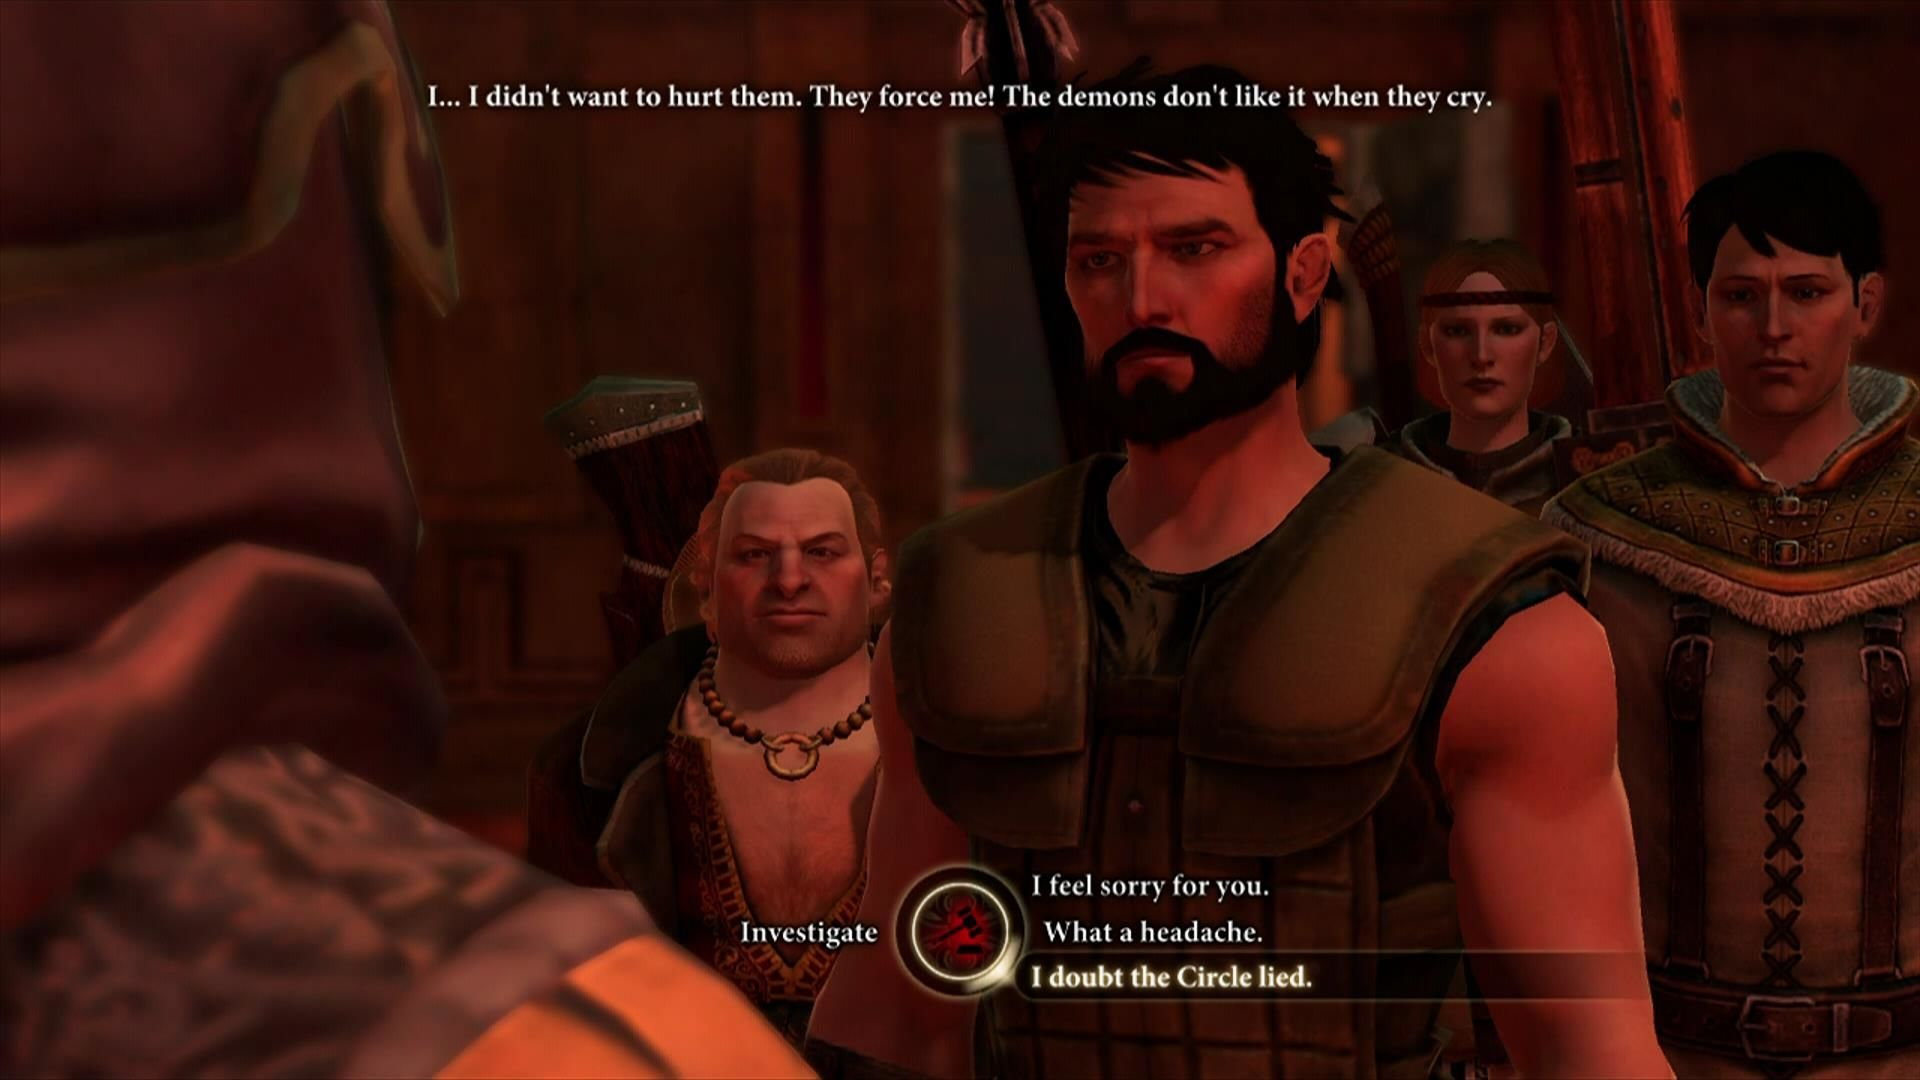 Dragon Age II Xbox 360 Dialogue options are similar to Mass Effect